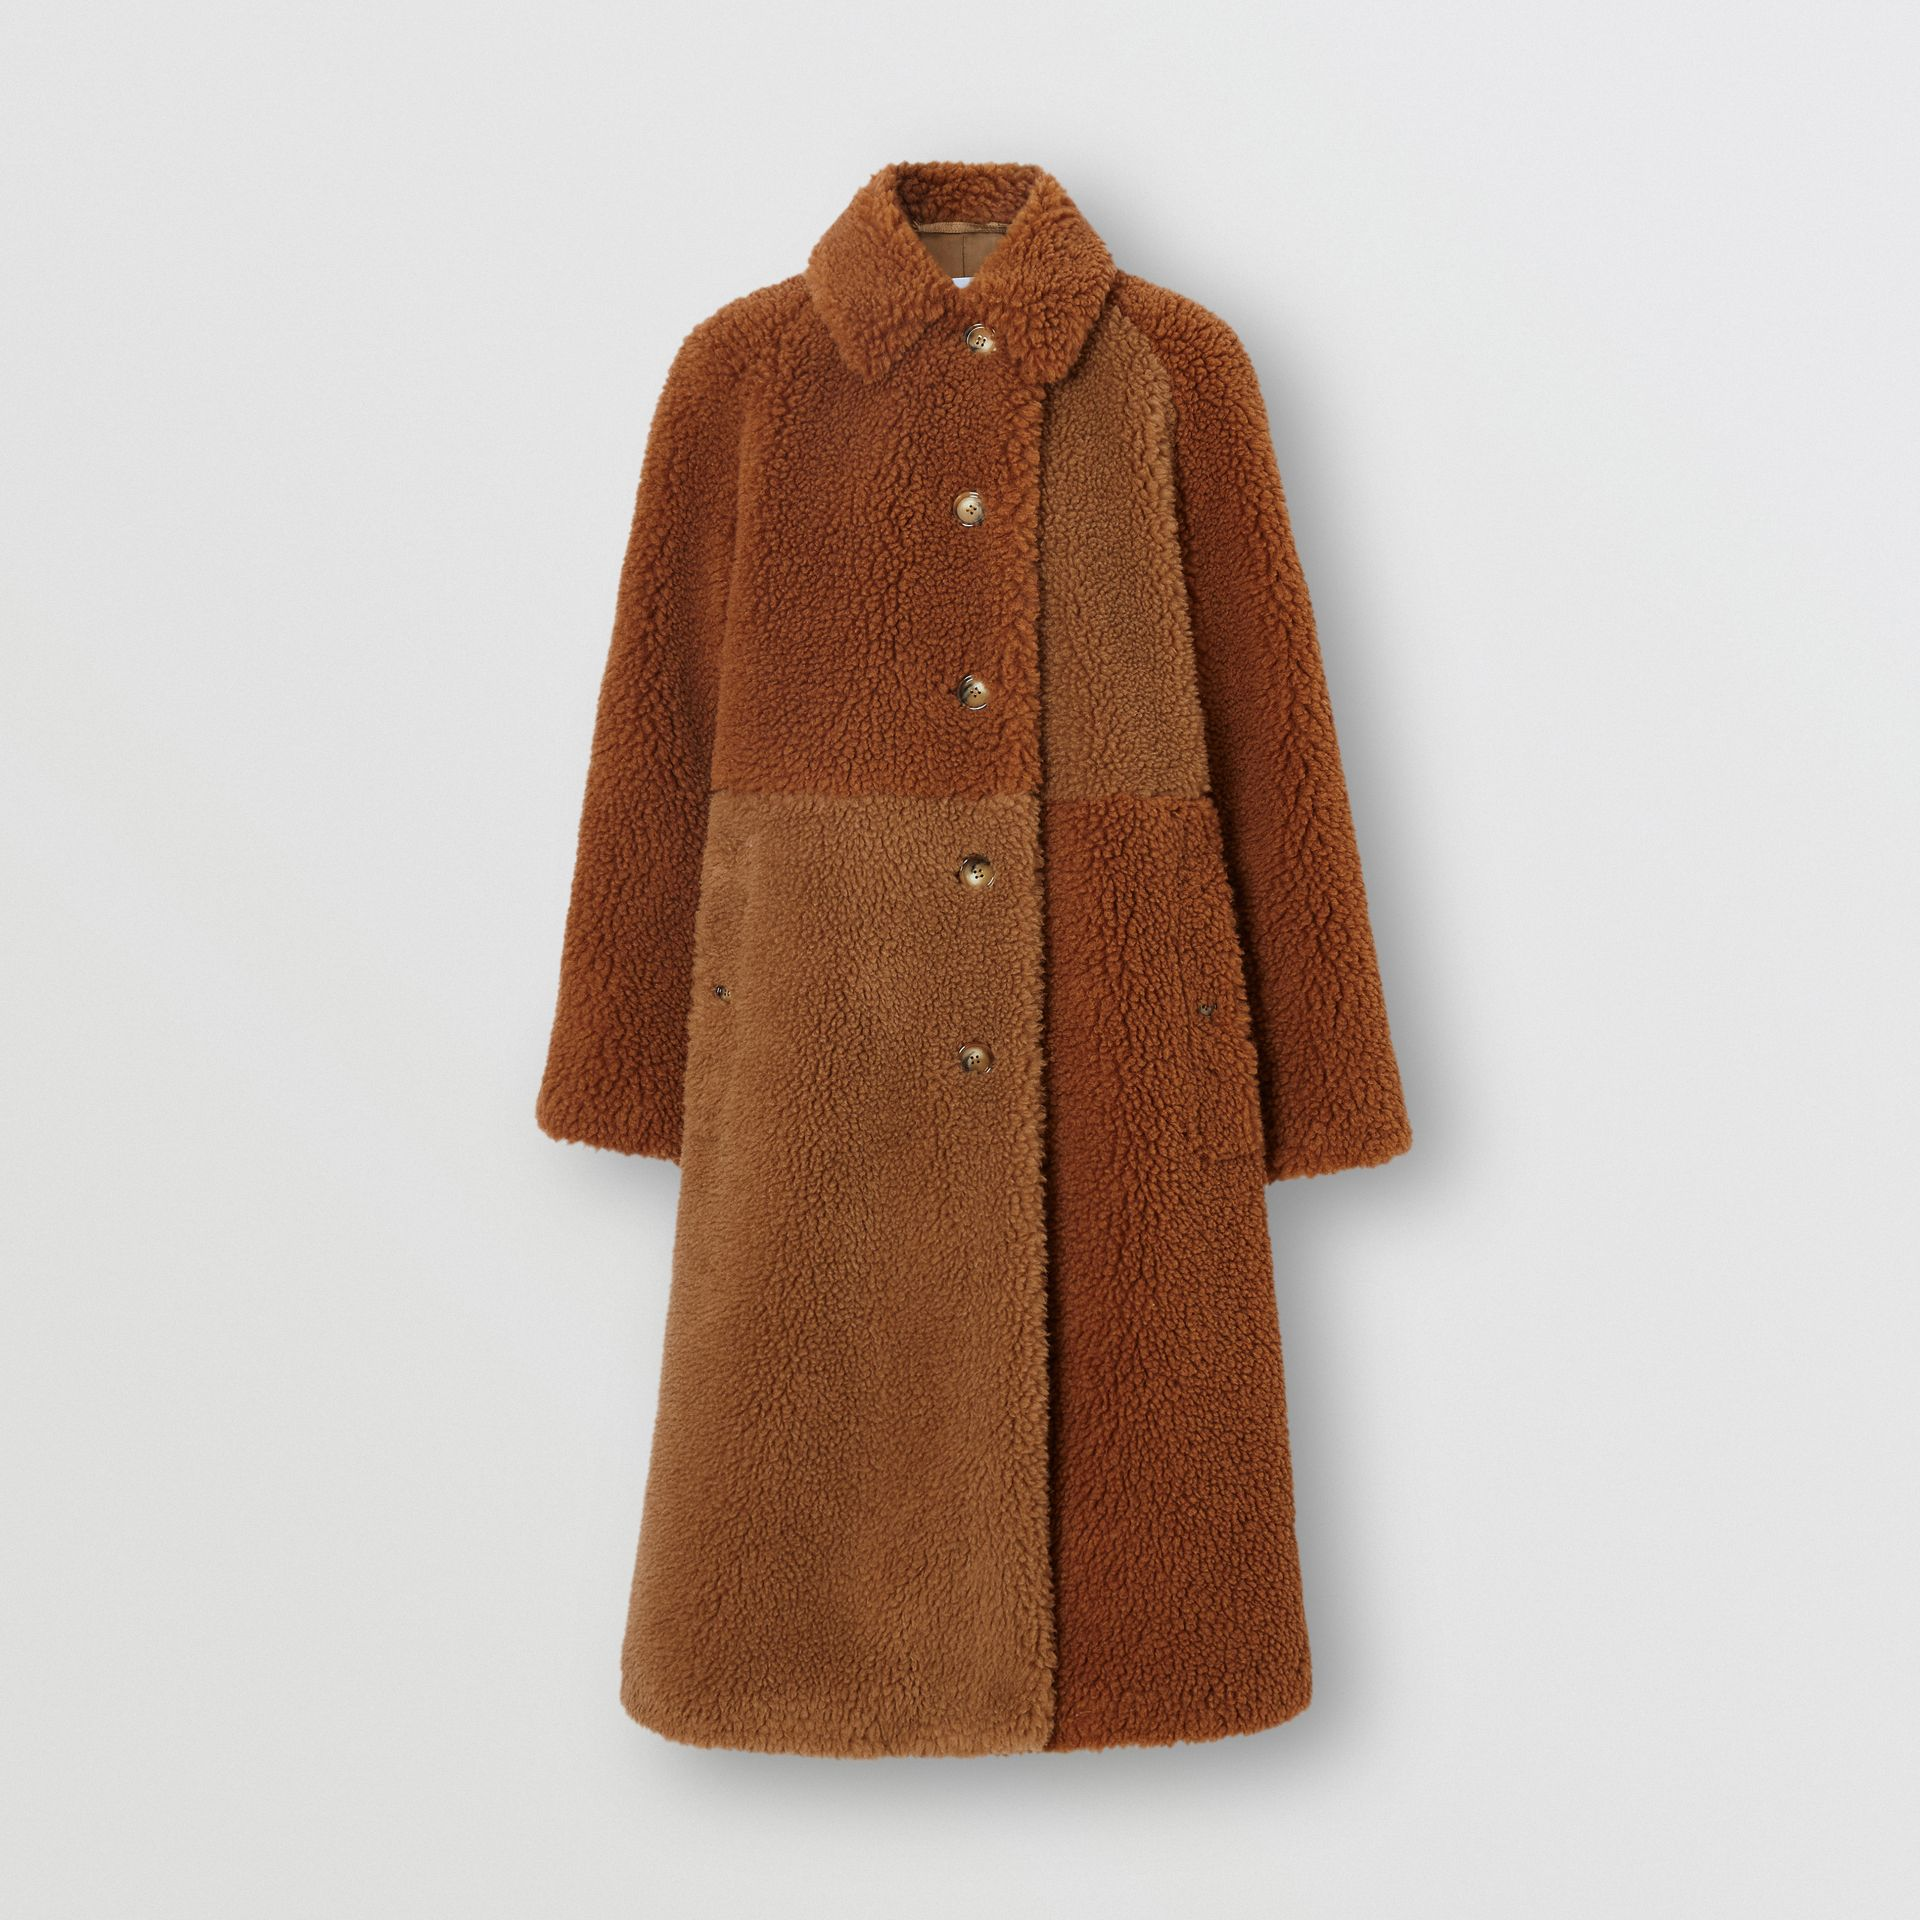 Faux Shearling and Camel Hair Blend Coat in Brown - Women | Burberry United Kingdom - gallery image 3